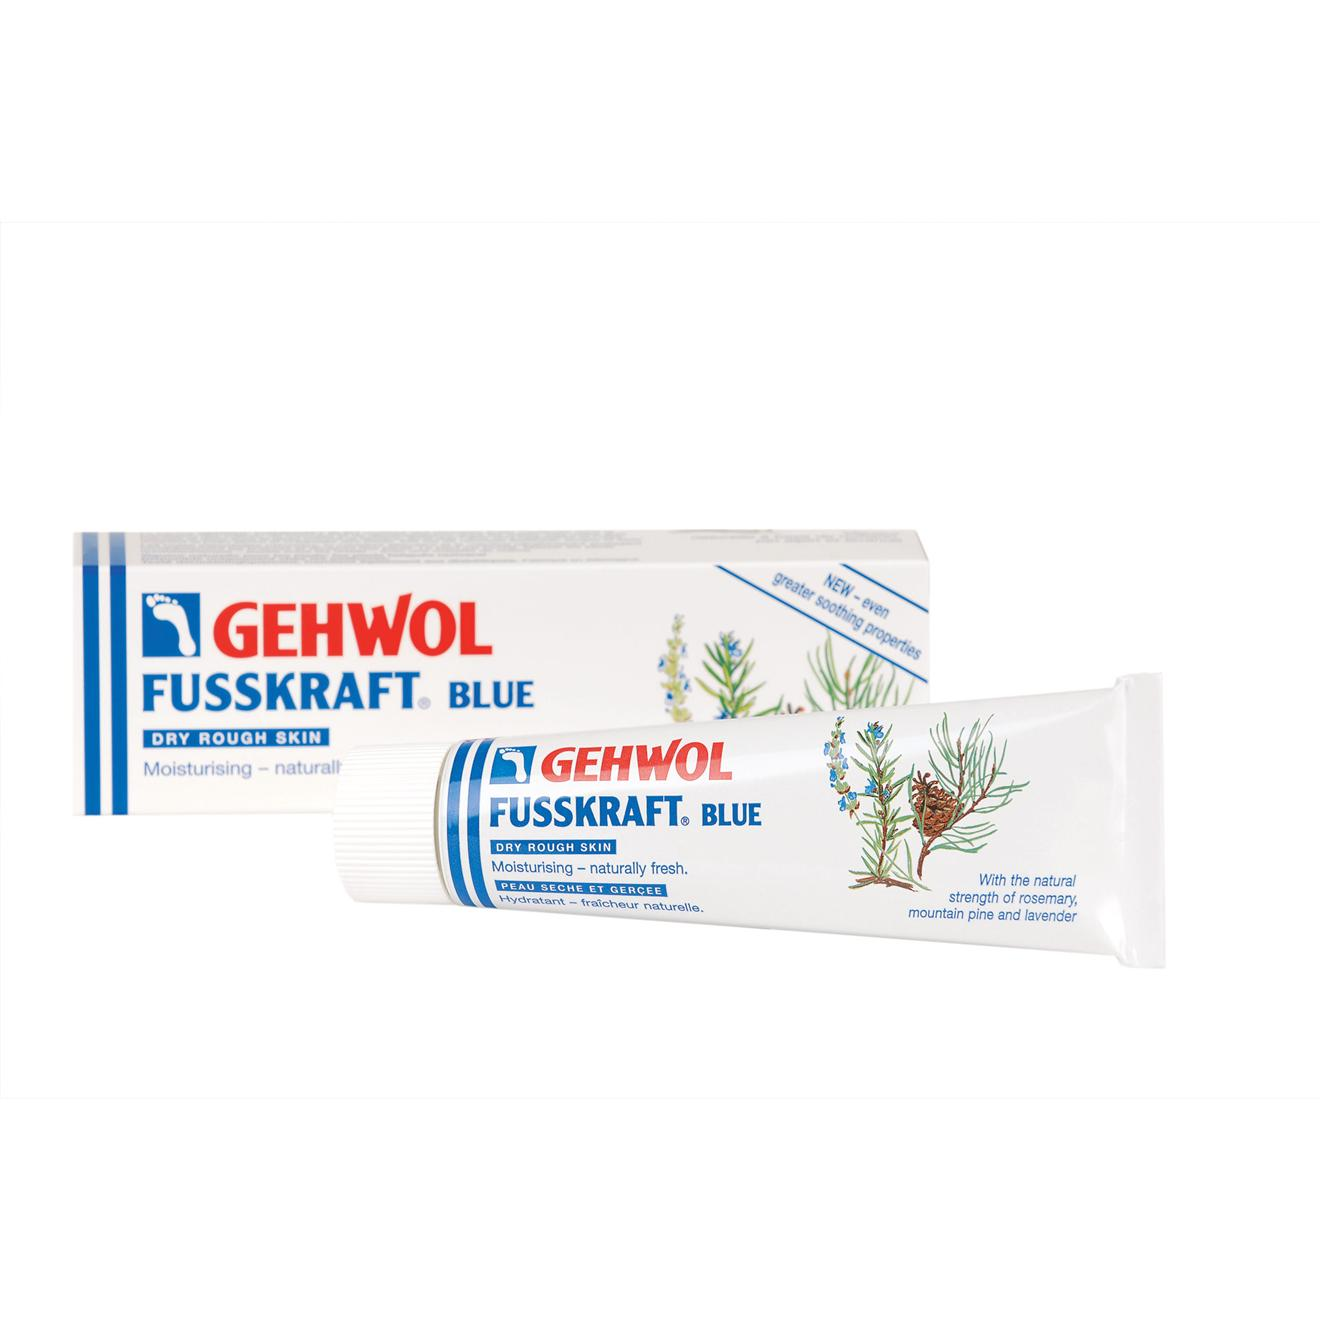 Gehwol FUSSKRAFT Blue 2.6 oz